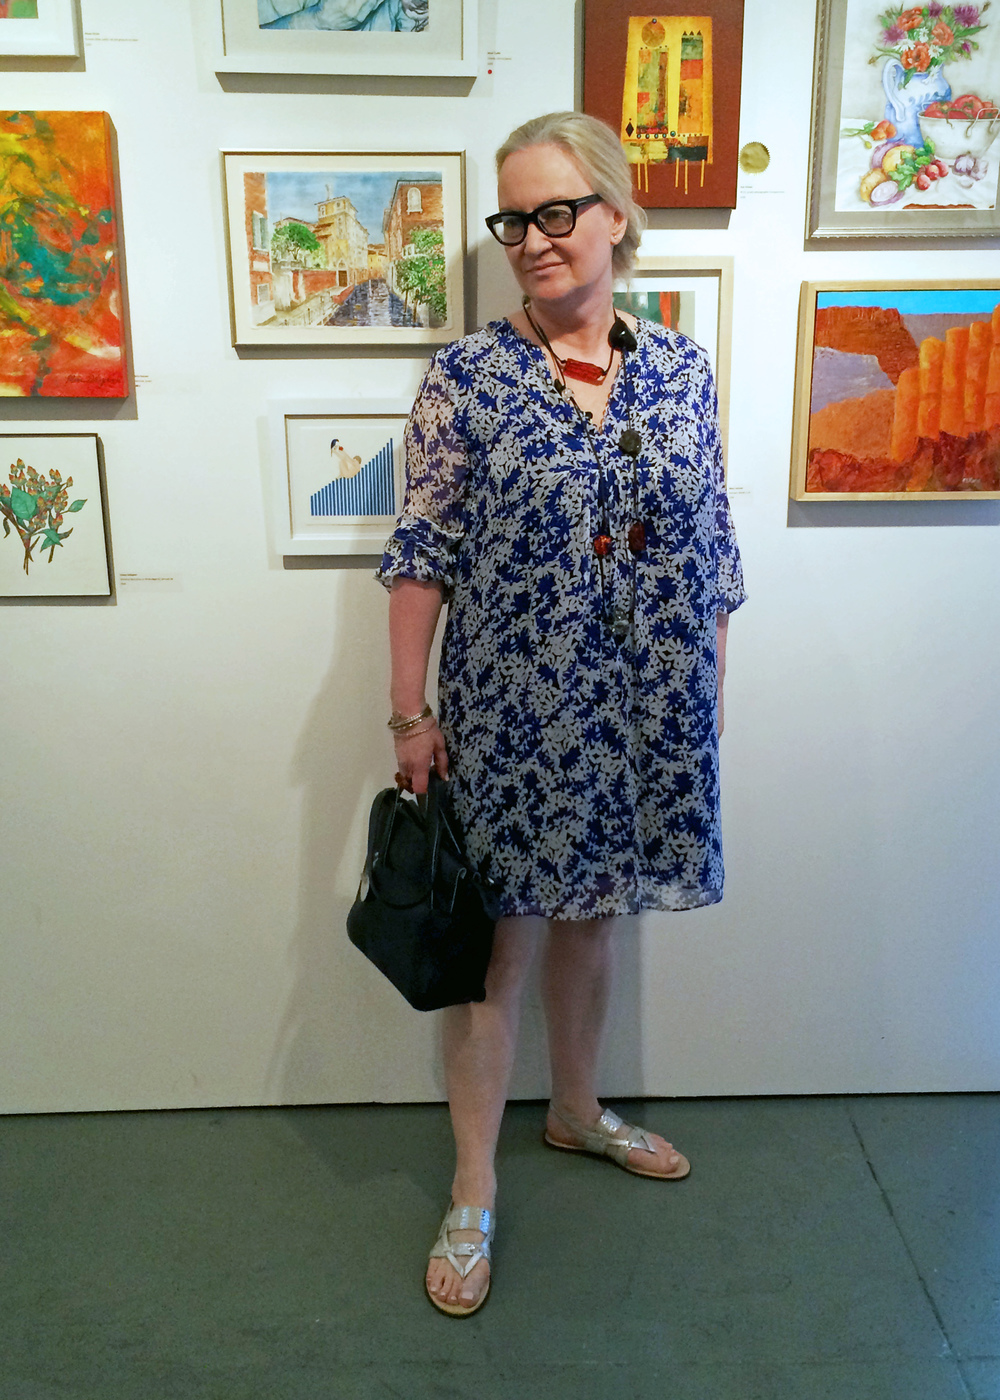 "At the reception of The National Association of Women Artists' Summer Small Works Exhibition, July 14, 2016: standing next to my watercolor painting, ""View of Palazza Soranzo van Axel, Venice""."